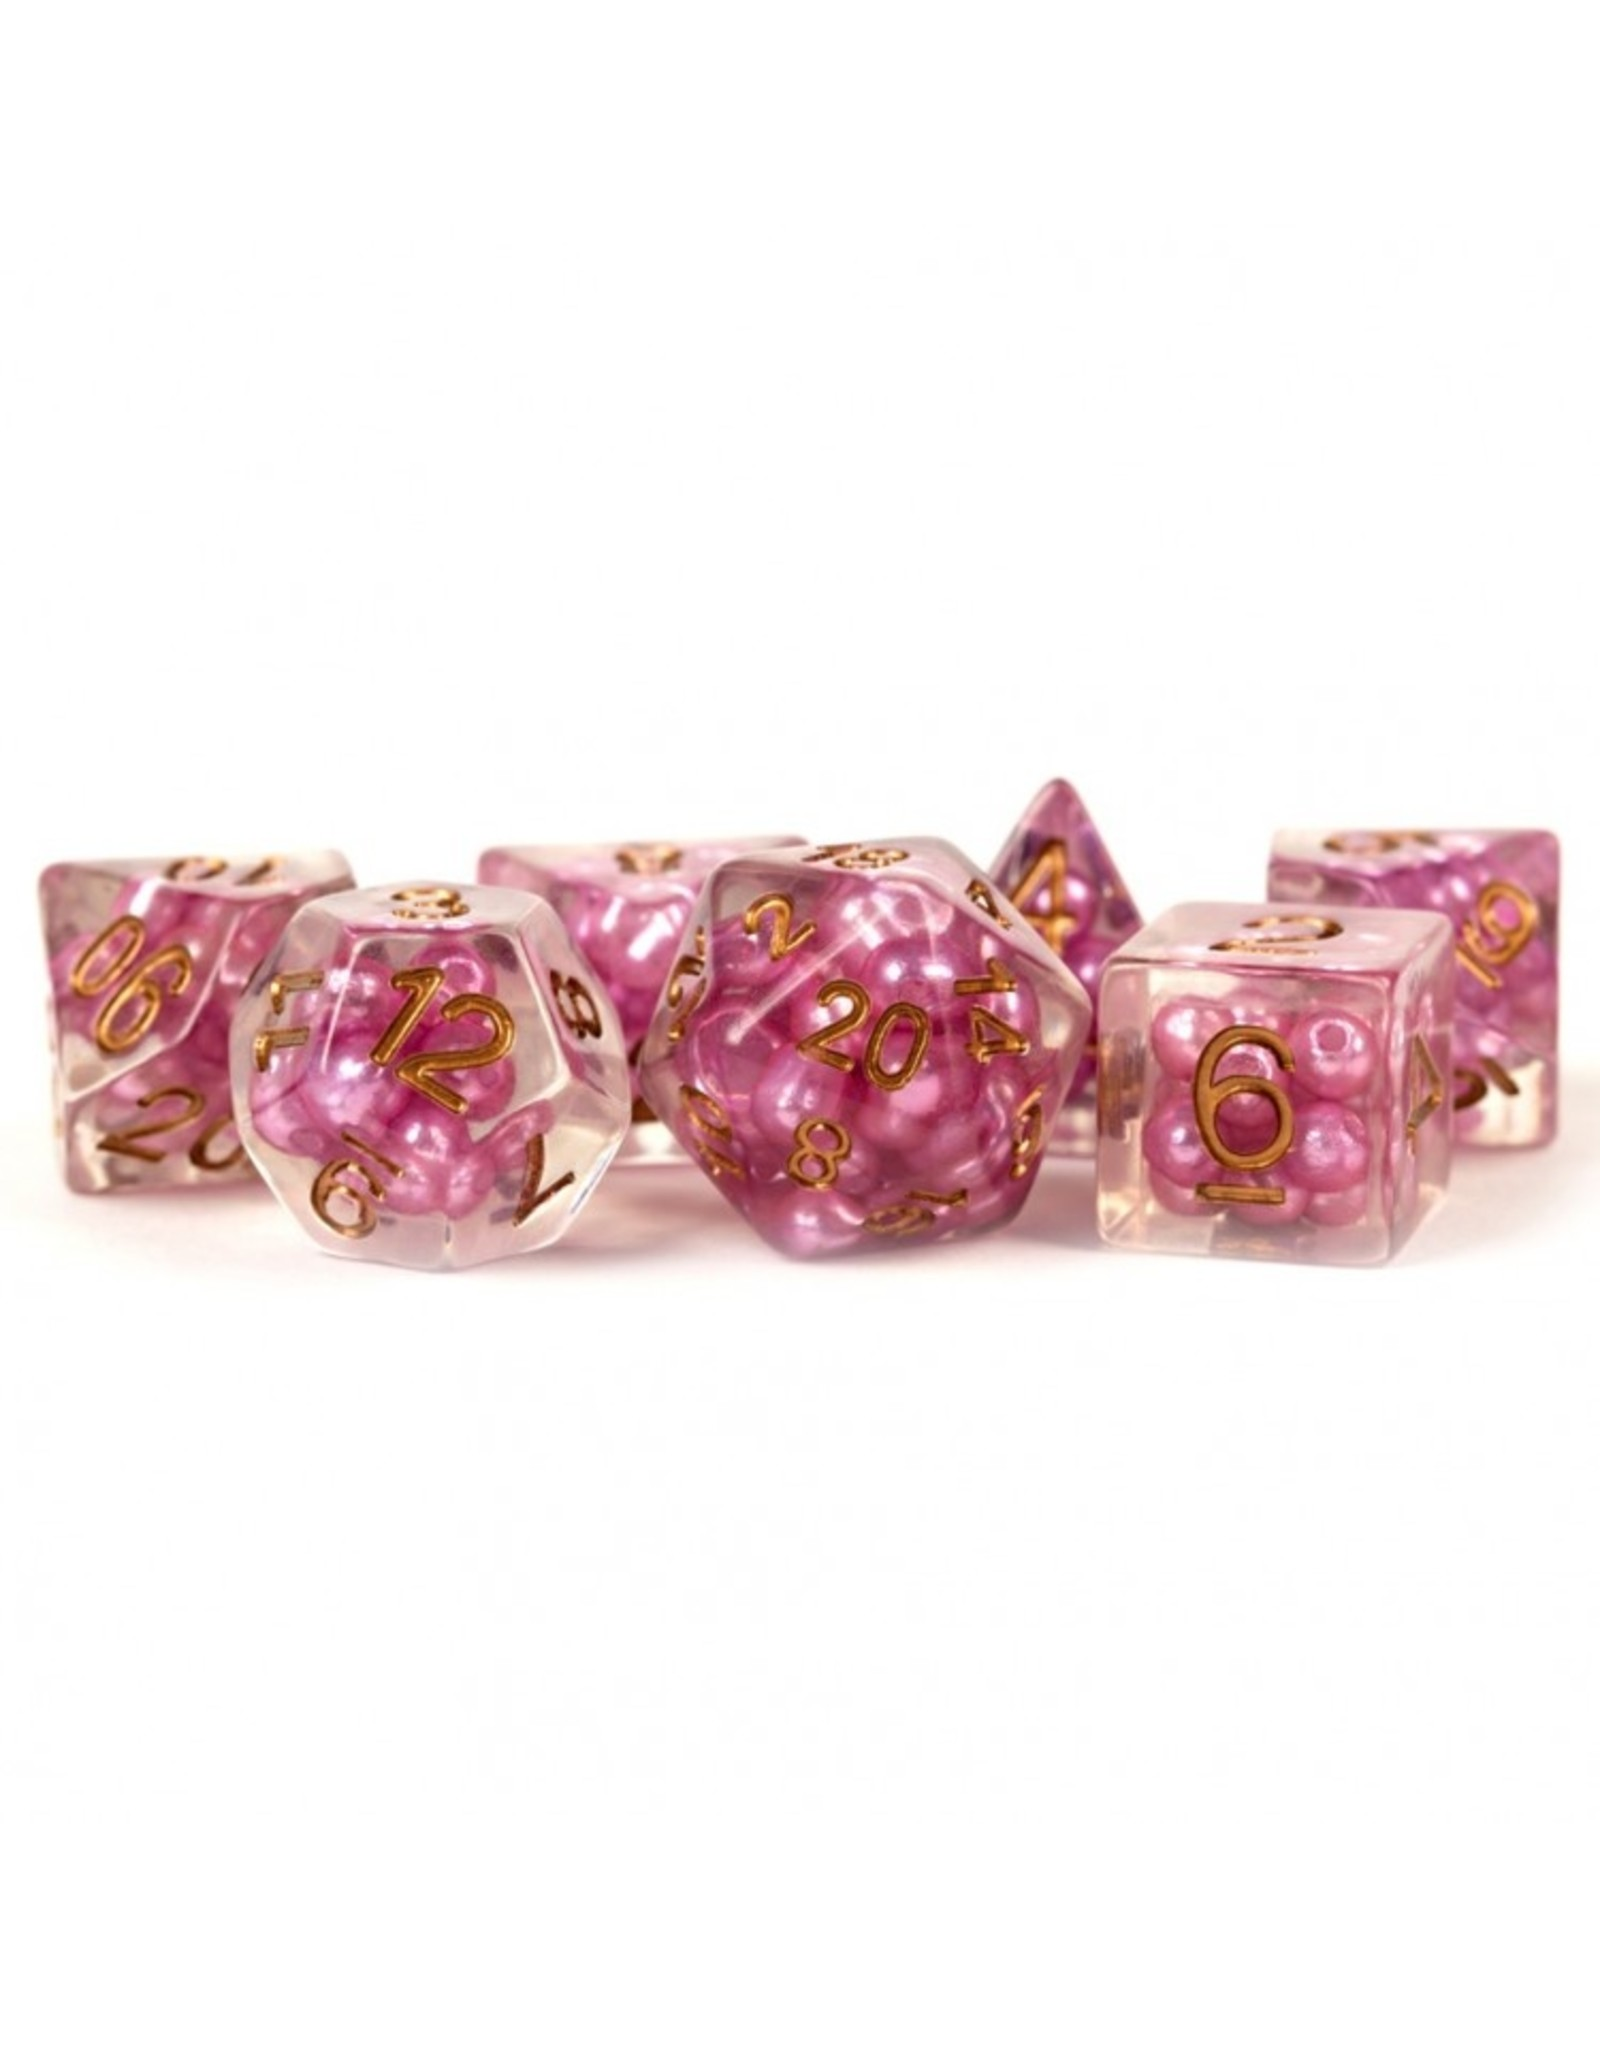 Dice 7-Set Pearl PKcp